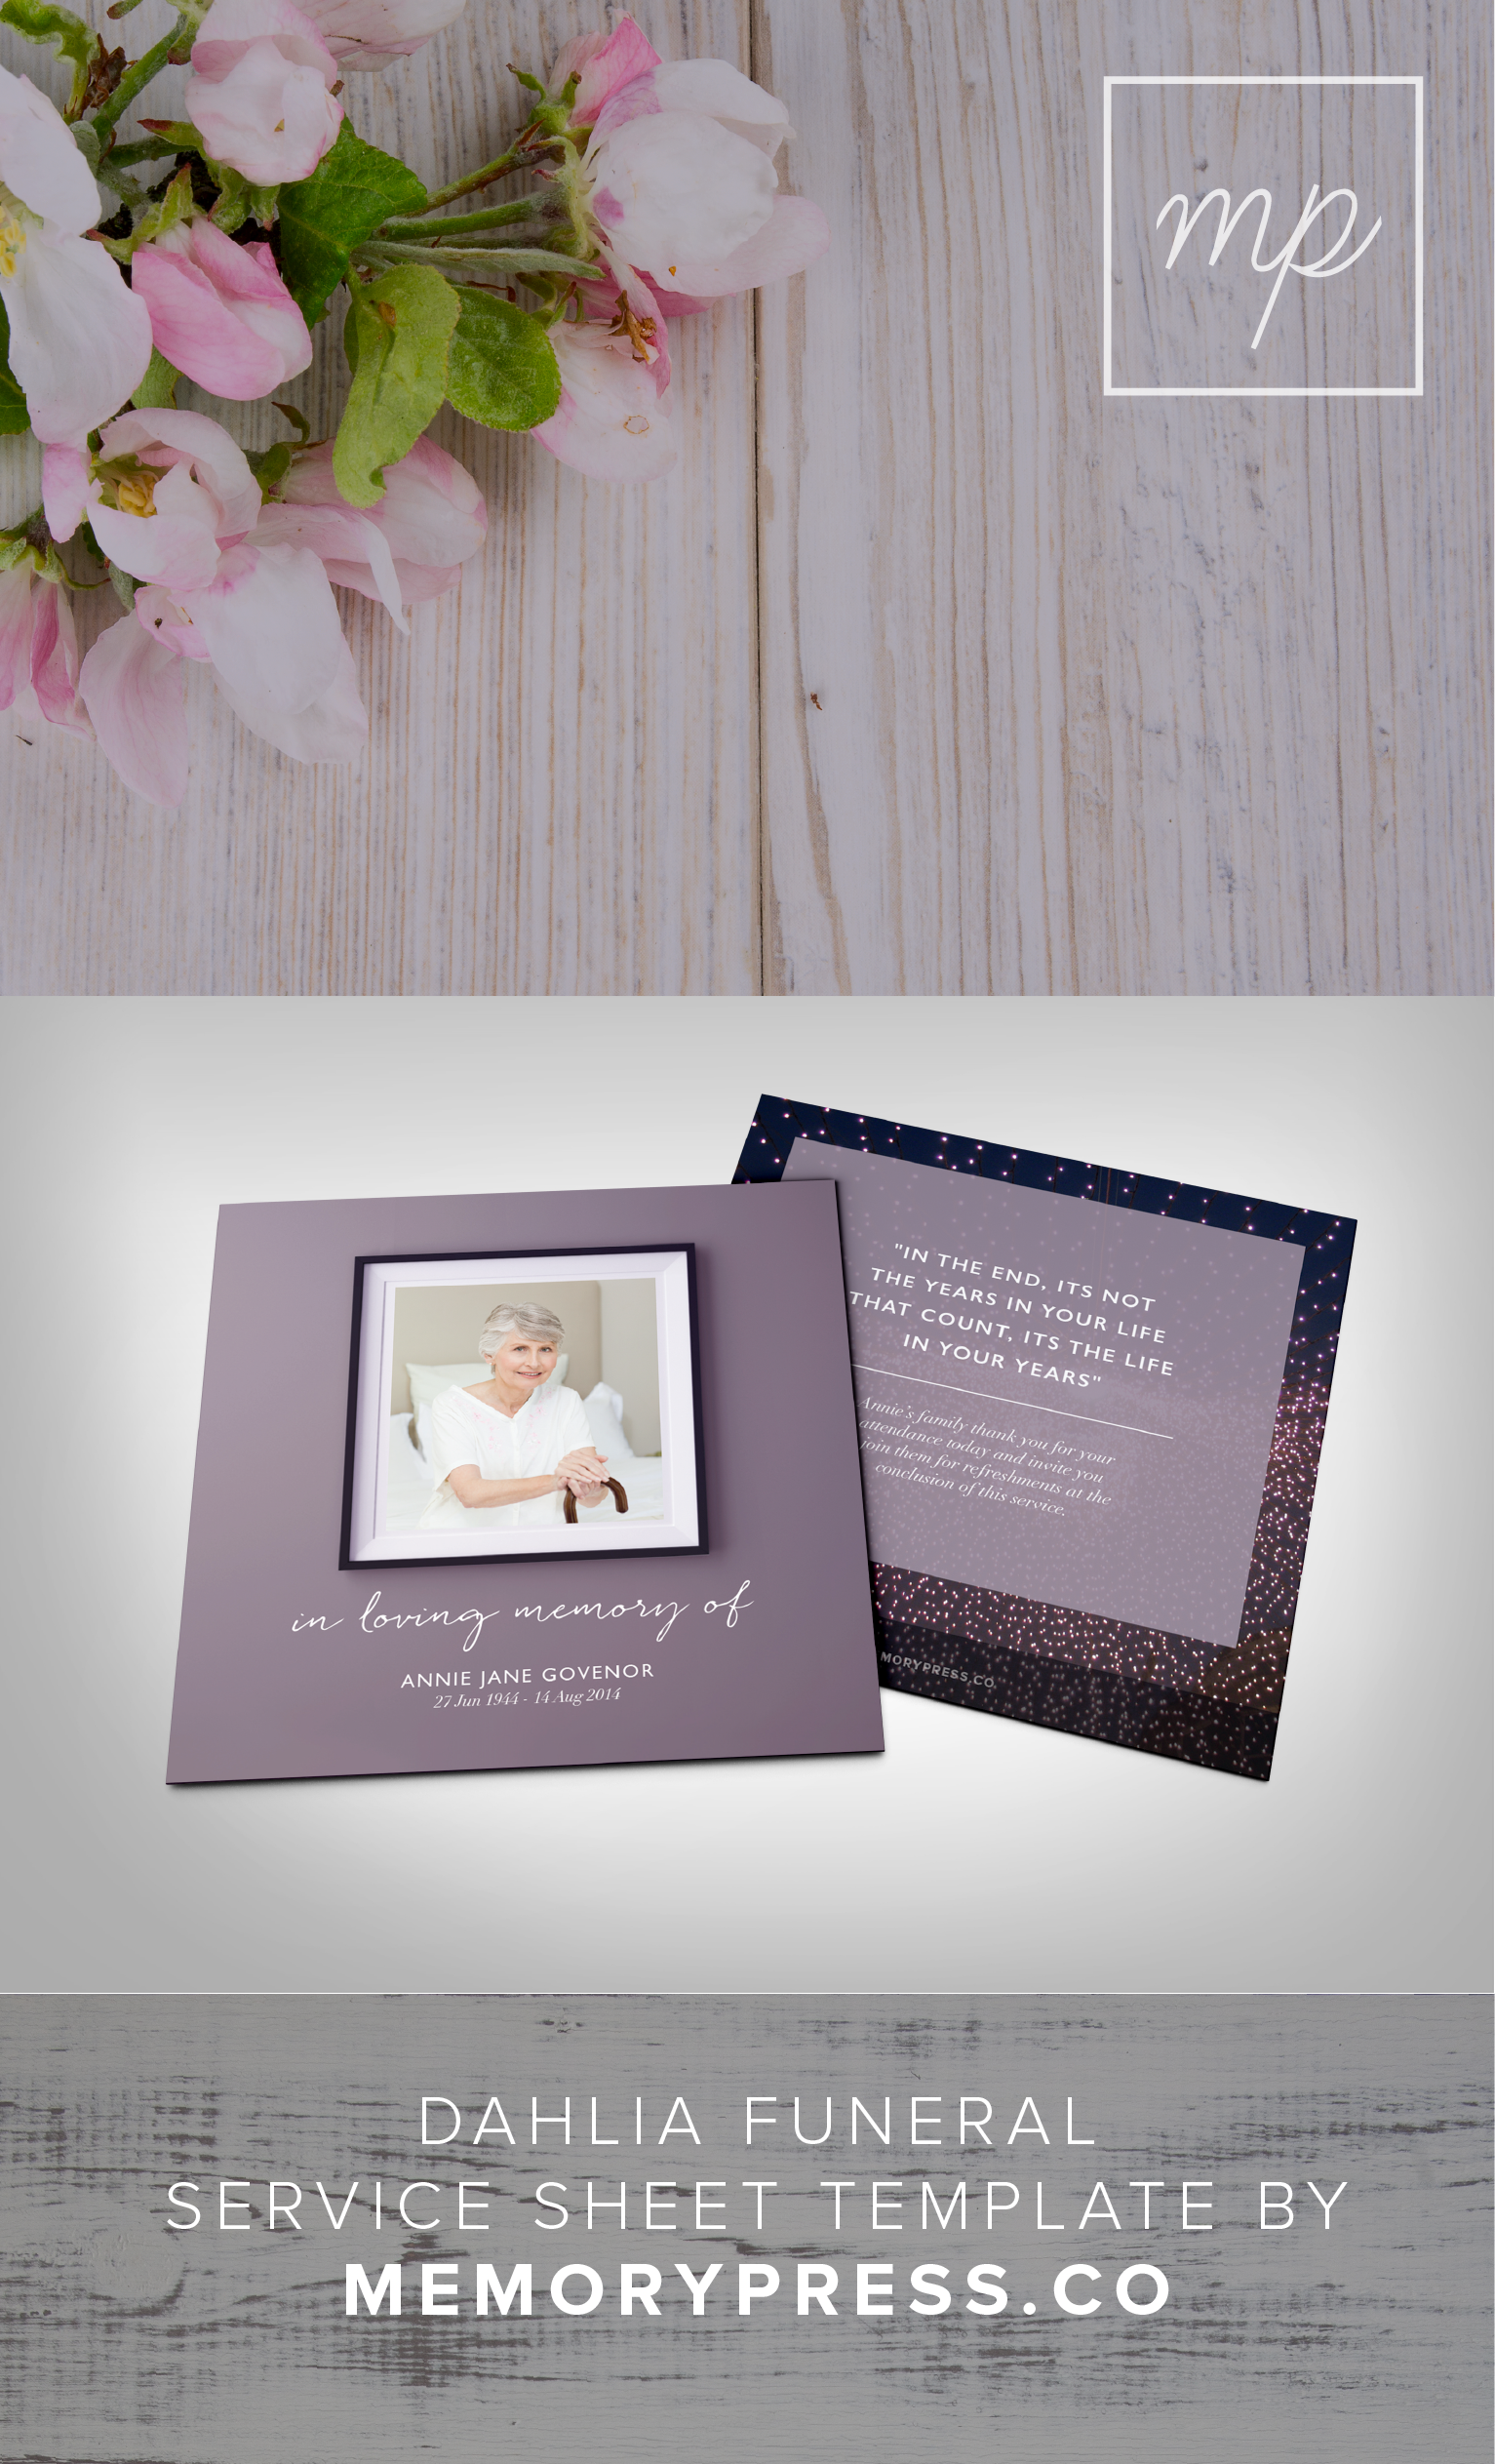 Dahlia funeral service sheet template, designed by Memory Press ...